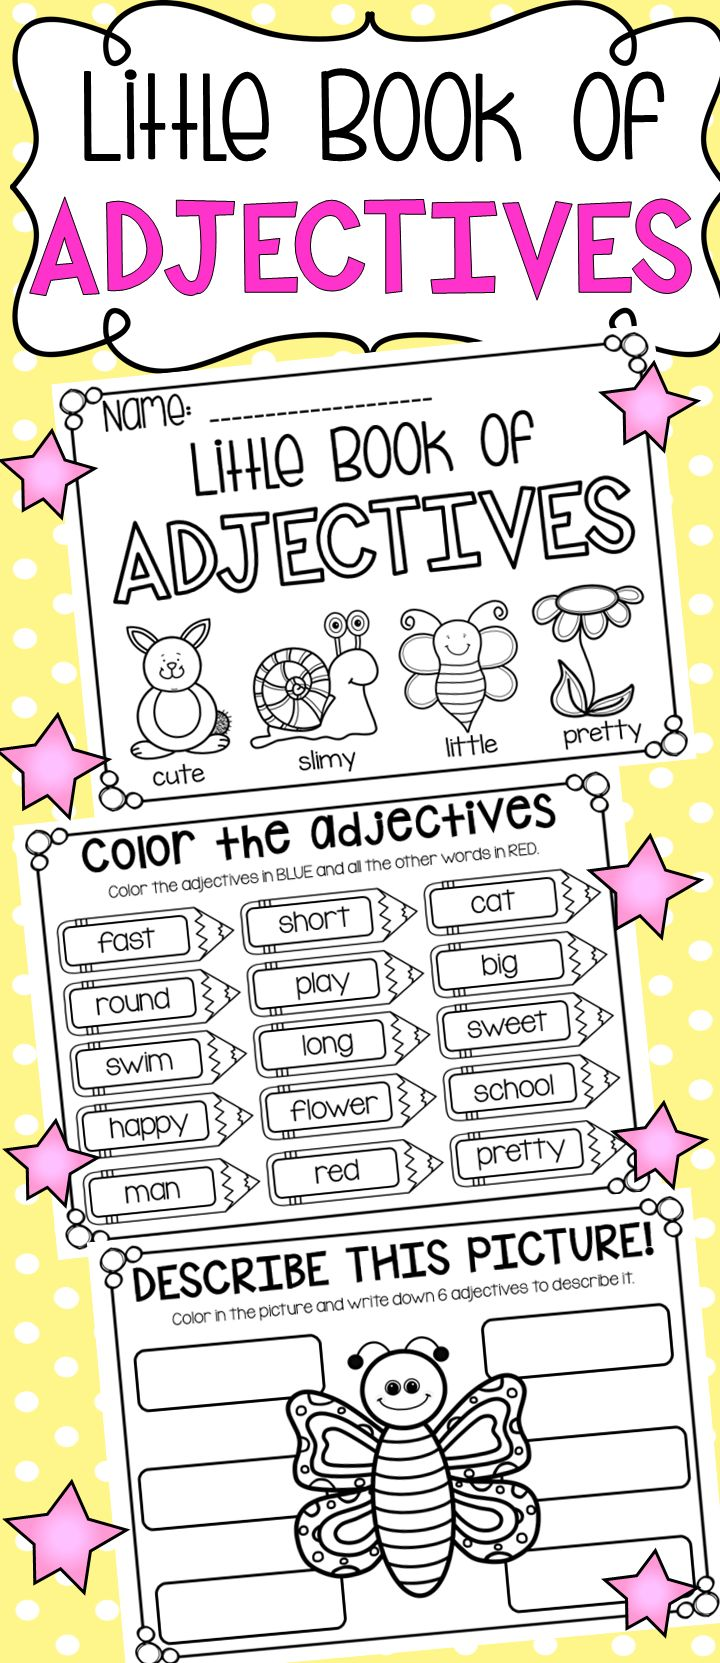 Little Book of Adjectives - Printable Booklet with Worksheets for Kindergarten, First Grade and Second Grade.